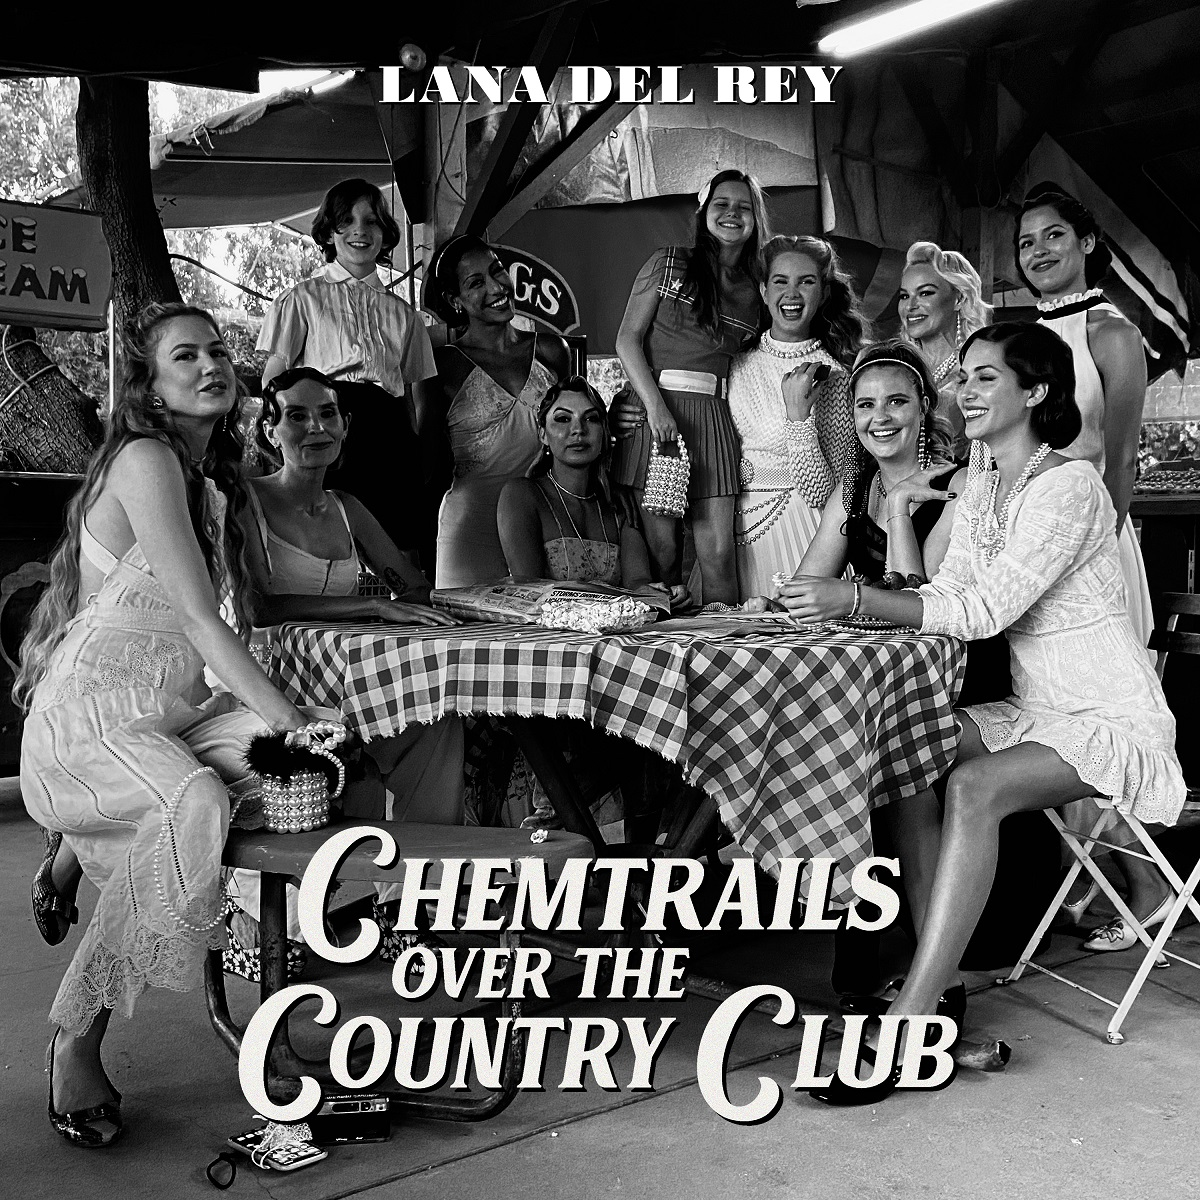 #NEWALBUMALERT @LanaDelRey CHEMTRAILS OVER THE COUNTRY CLUB is coming to record stores on 3/19  CD/CD Box Set/Cassette/Vinyl/Indie Yellow Vinyl   Pre-order at your favorite record store or find one here: